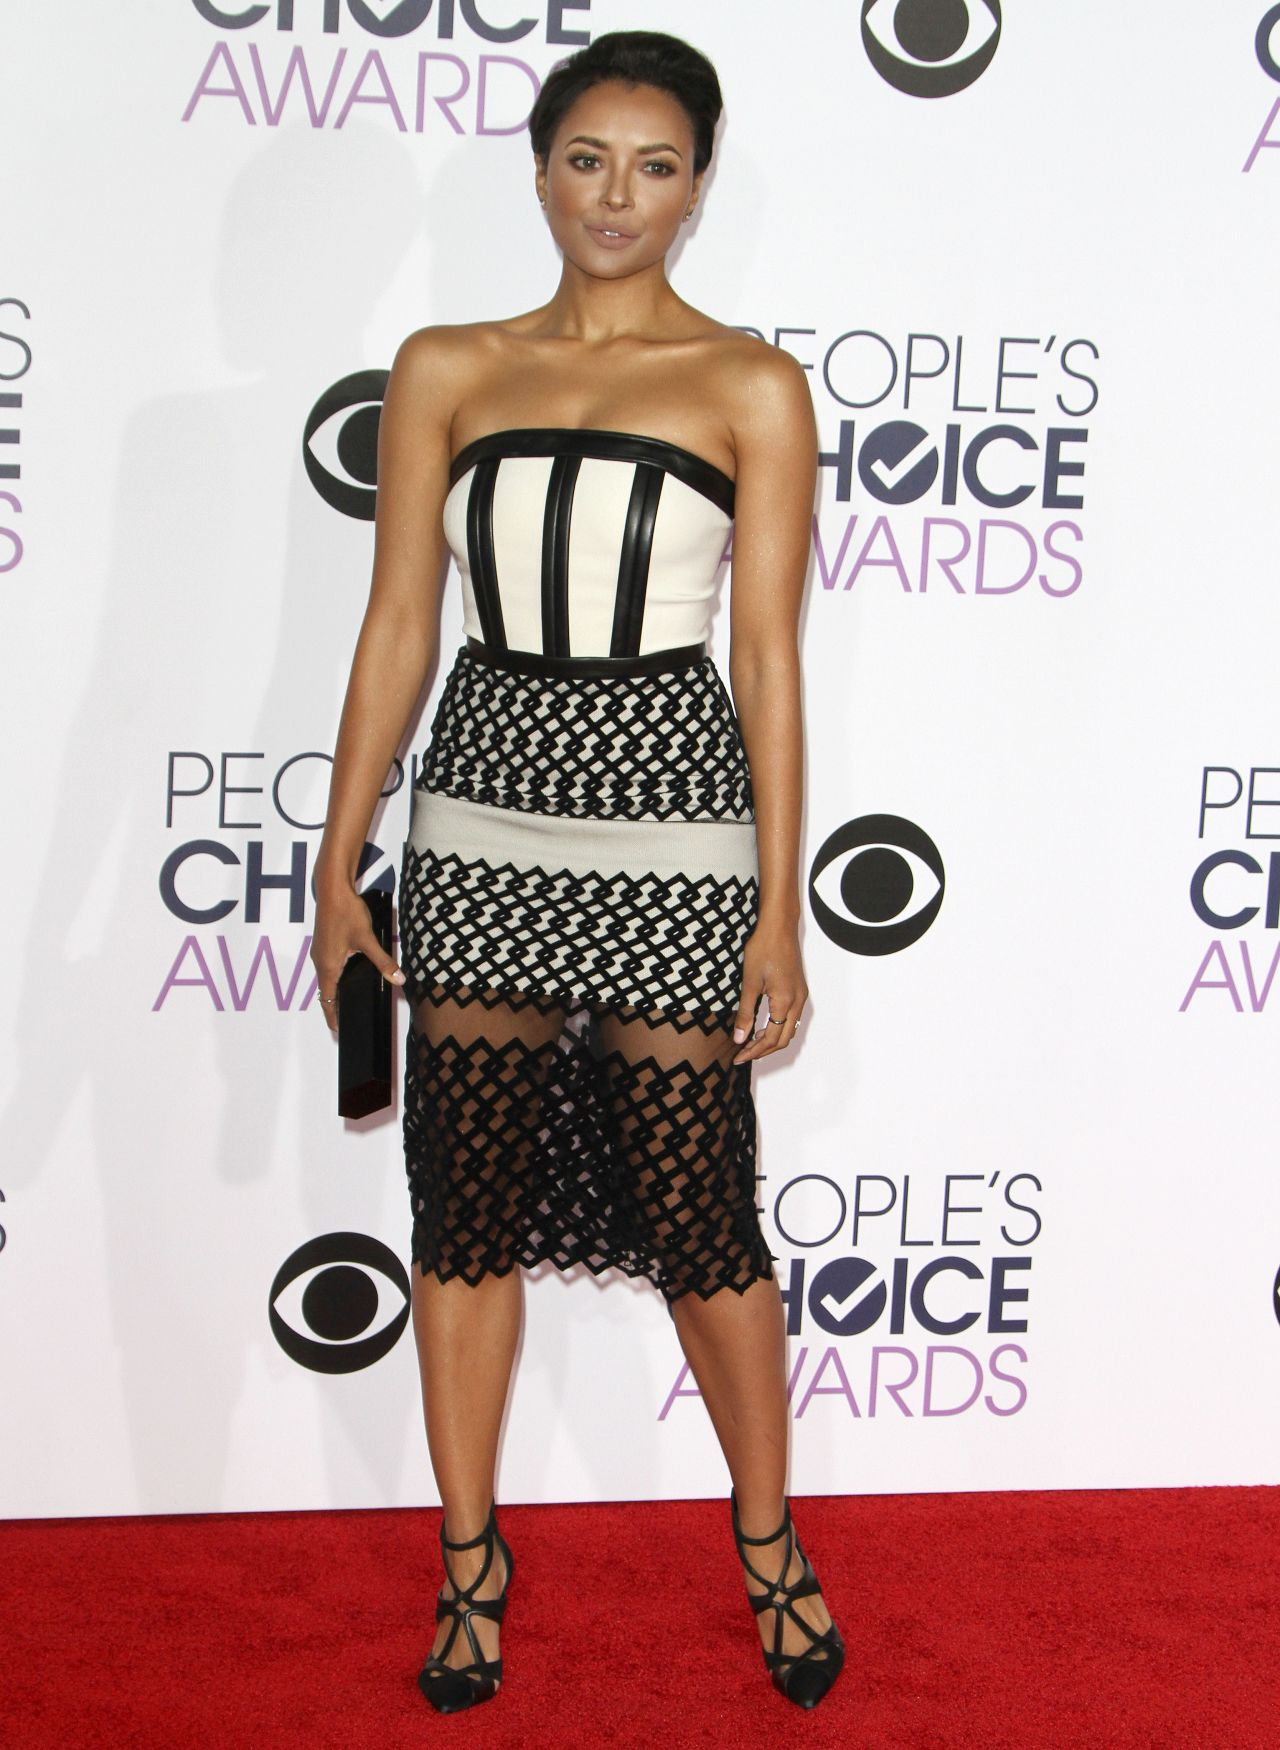 kat-graham-2016-people-s-choice-awards-in-microsoft-theater-in-los-angeles-2